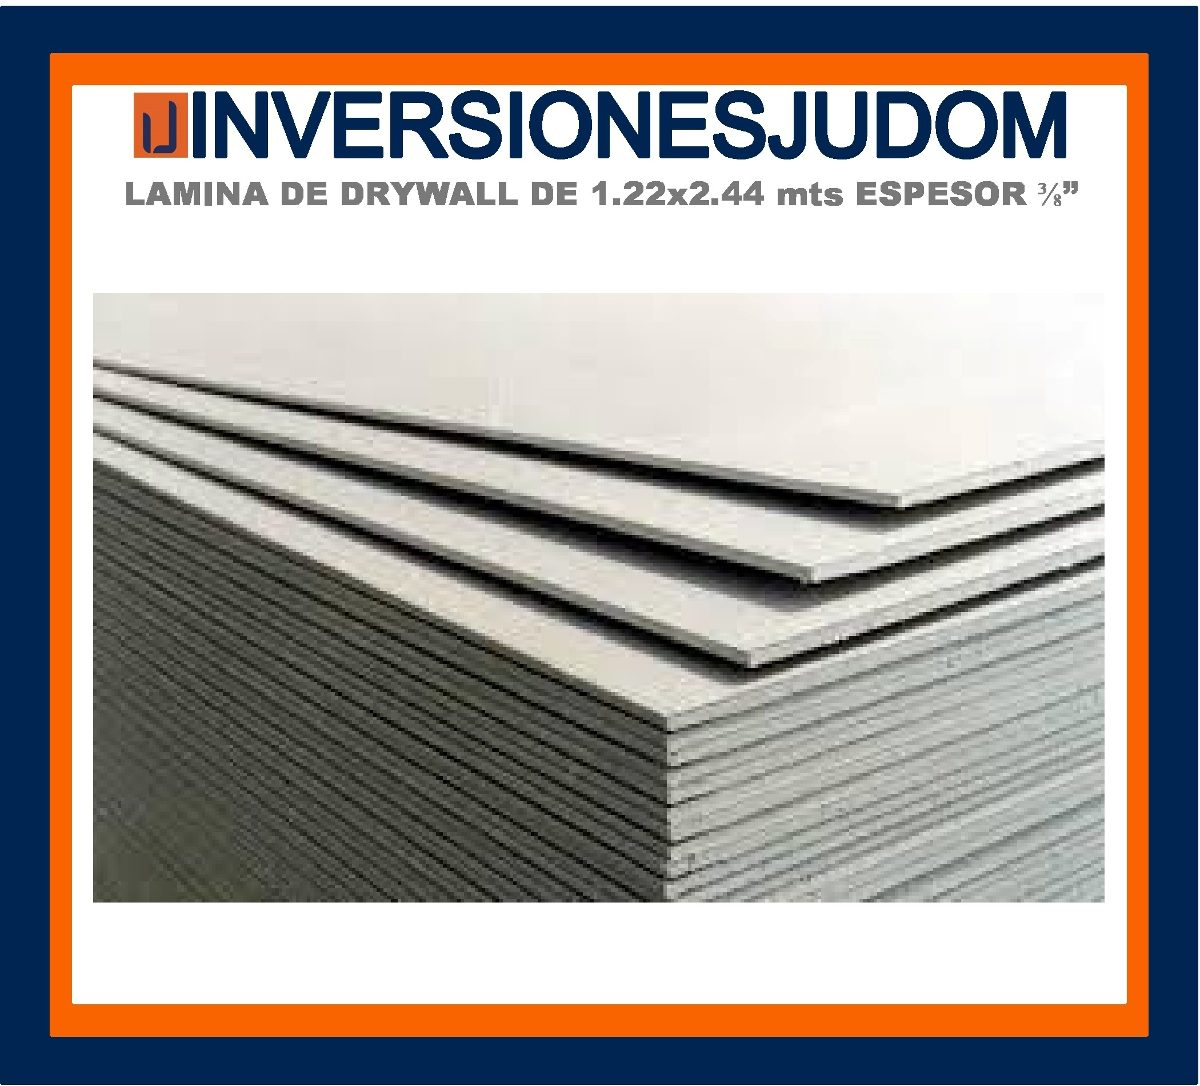 Dorable Encofrado De Metal Para Techo De Drywall Molde - Ideas ...